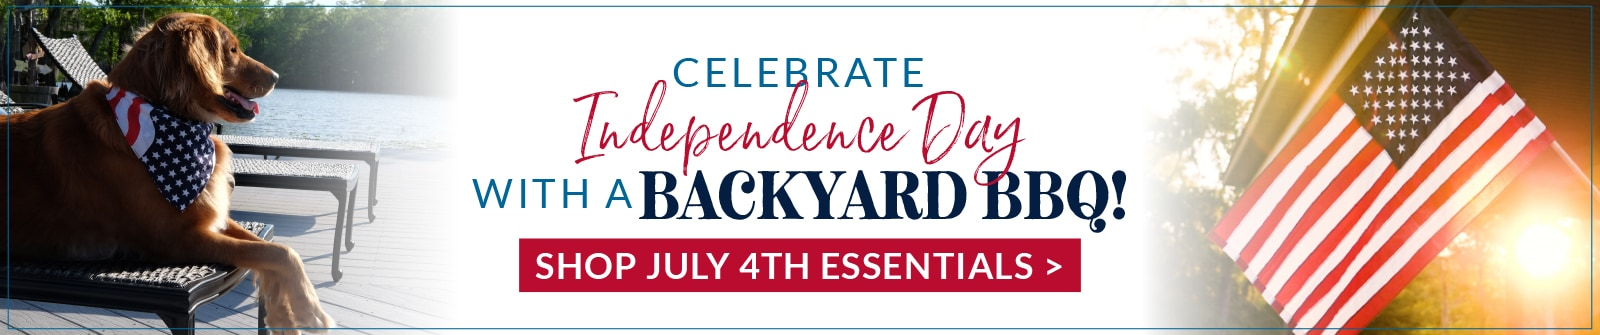 Celebrate Independence Day with a Backyard BBQ!